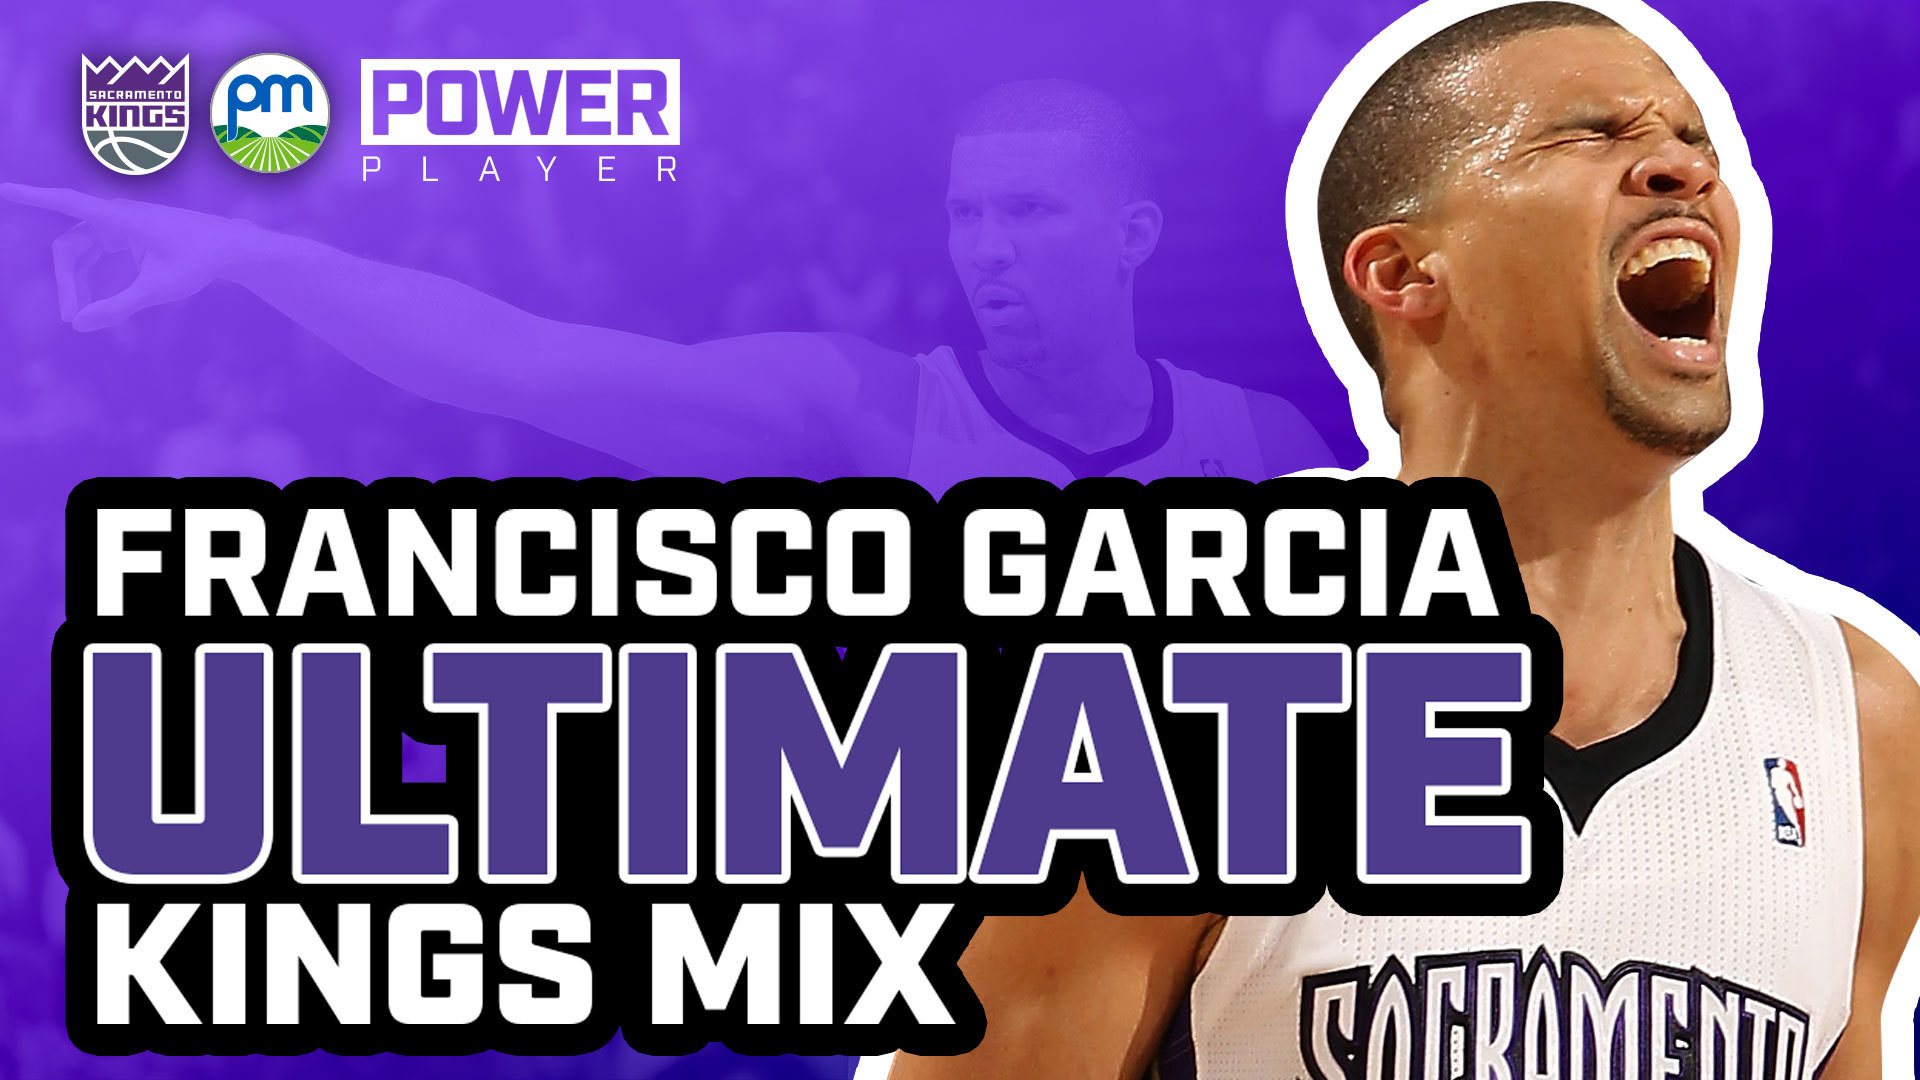 FRANCISCO GARCIA ULTIMATE KINGS MIX